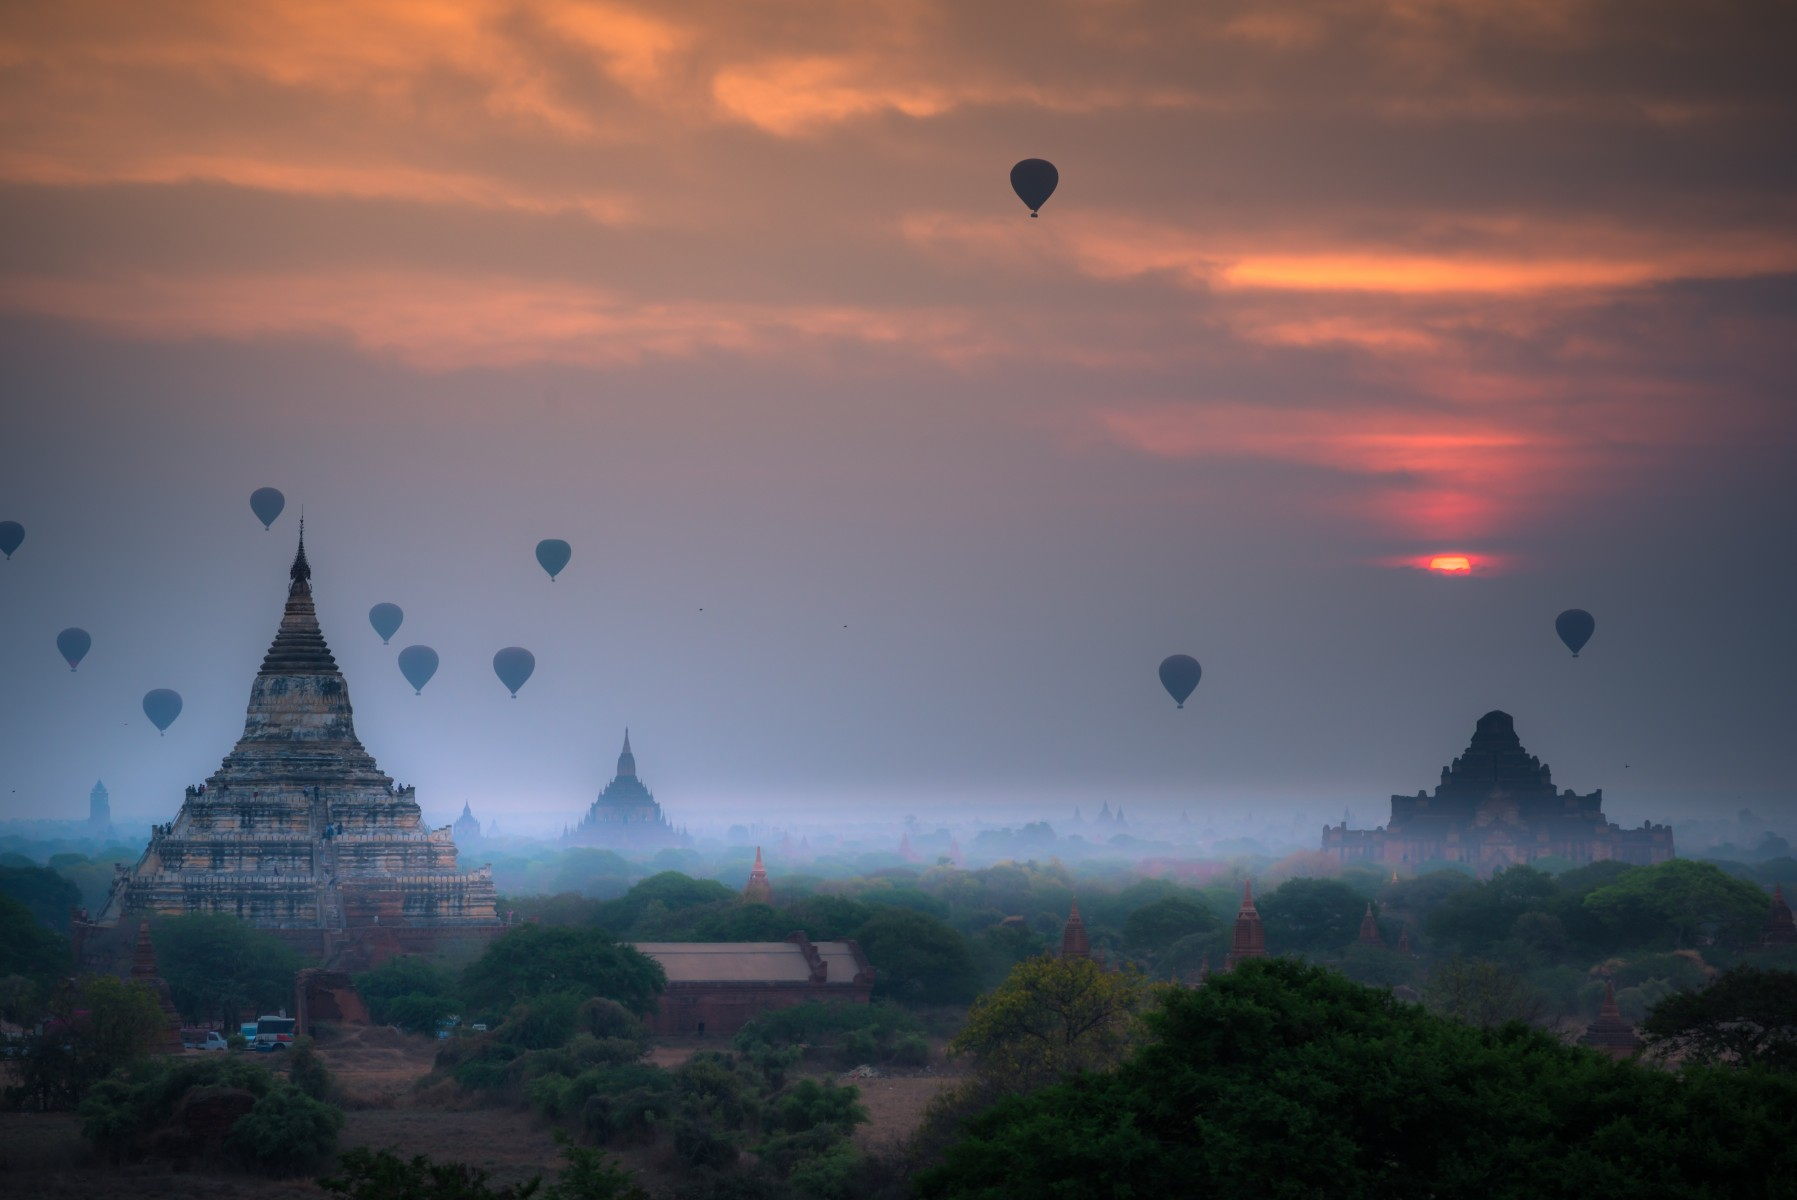 Hot air balloon over plain of Bagan